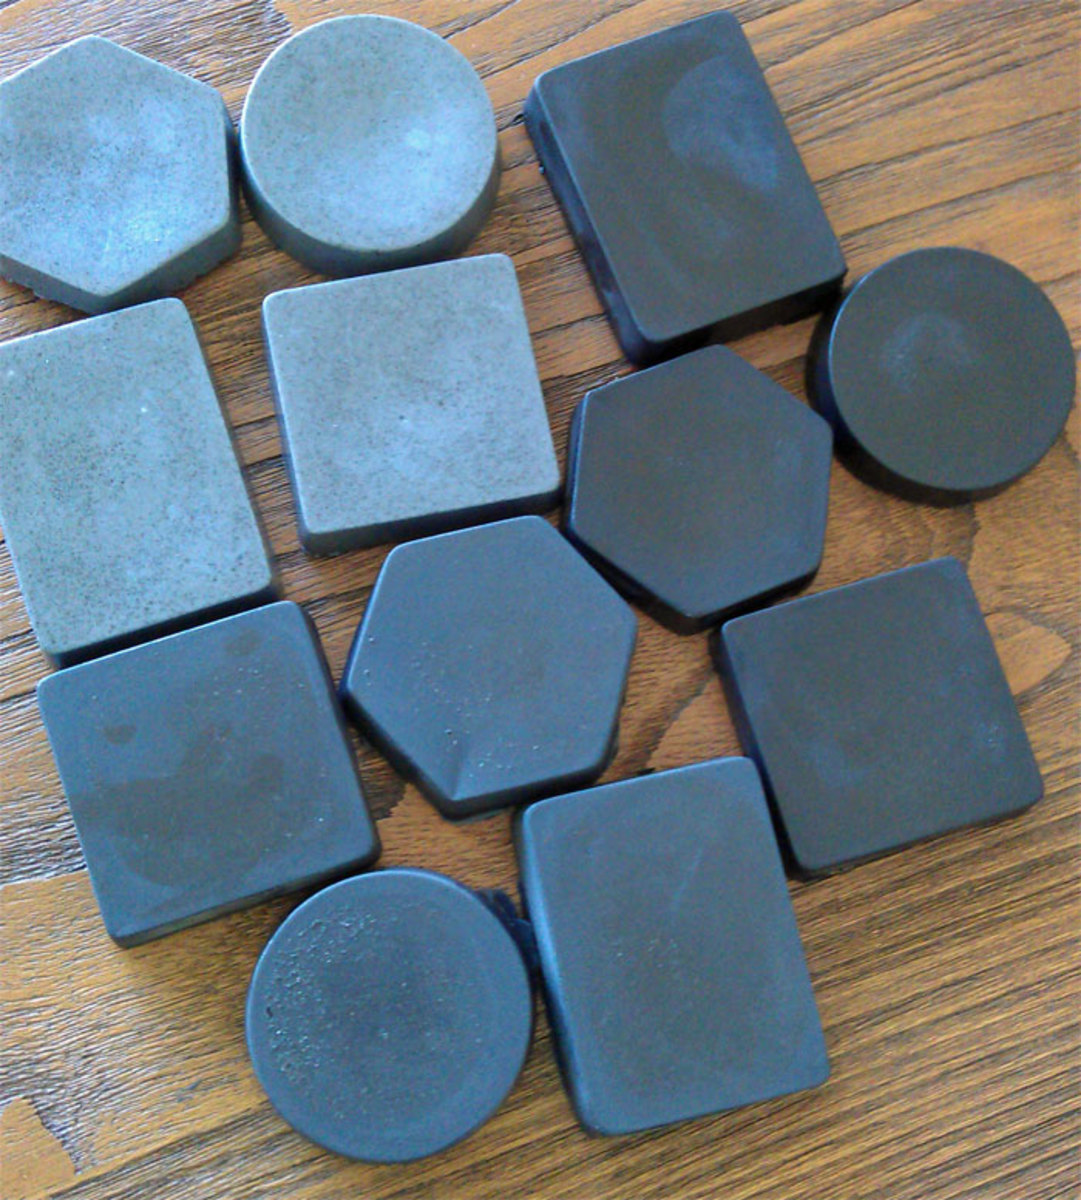 Bamboo charcoal soap with varying amounts of charcoal